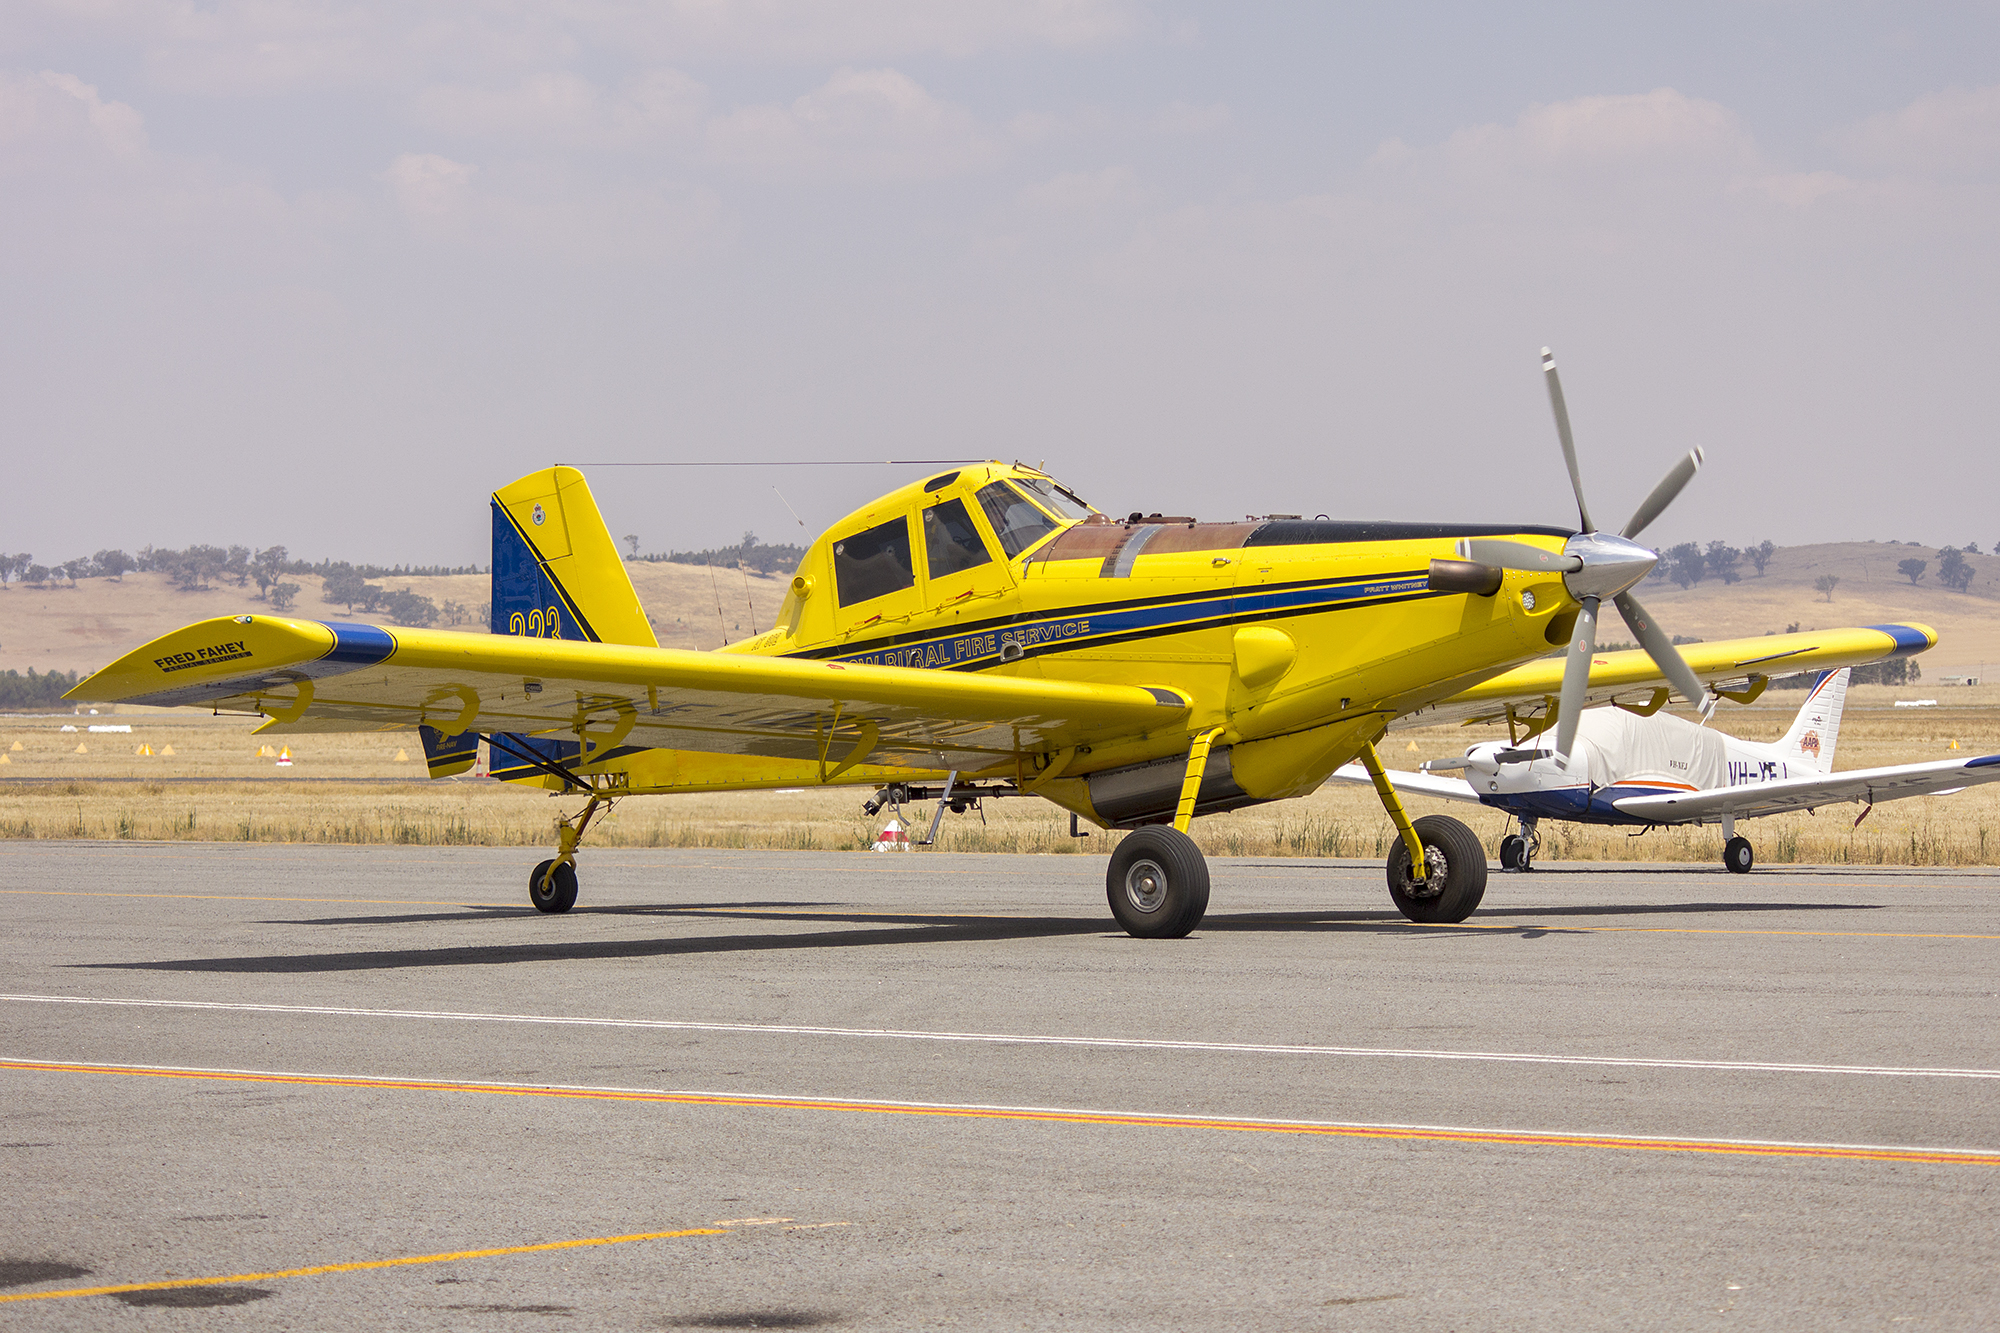 File:Fred Fahey Aerial Services (VH-CVF) Air Tractor AT-802